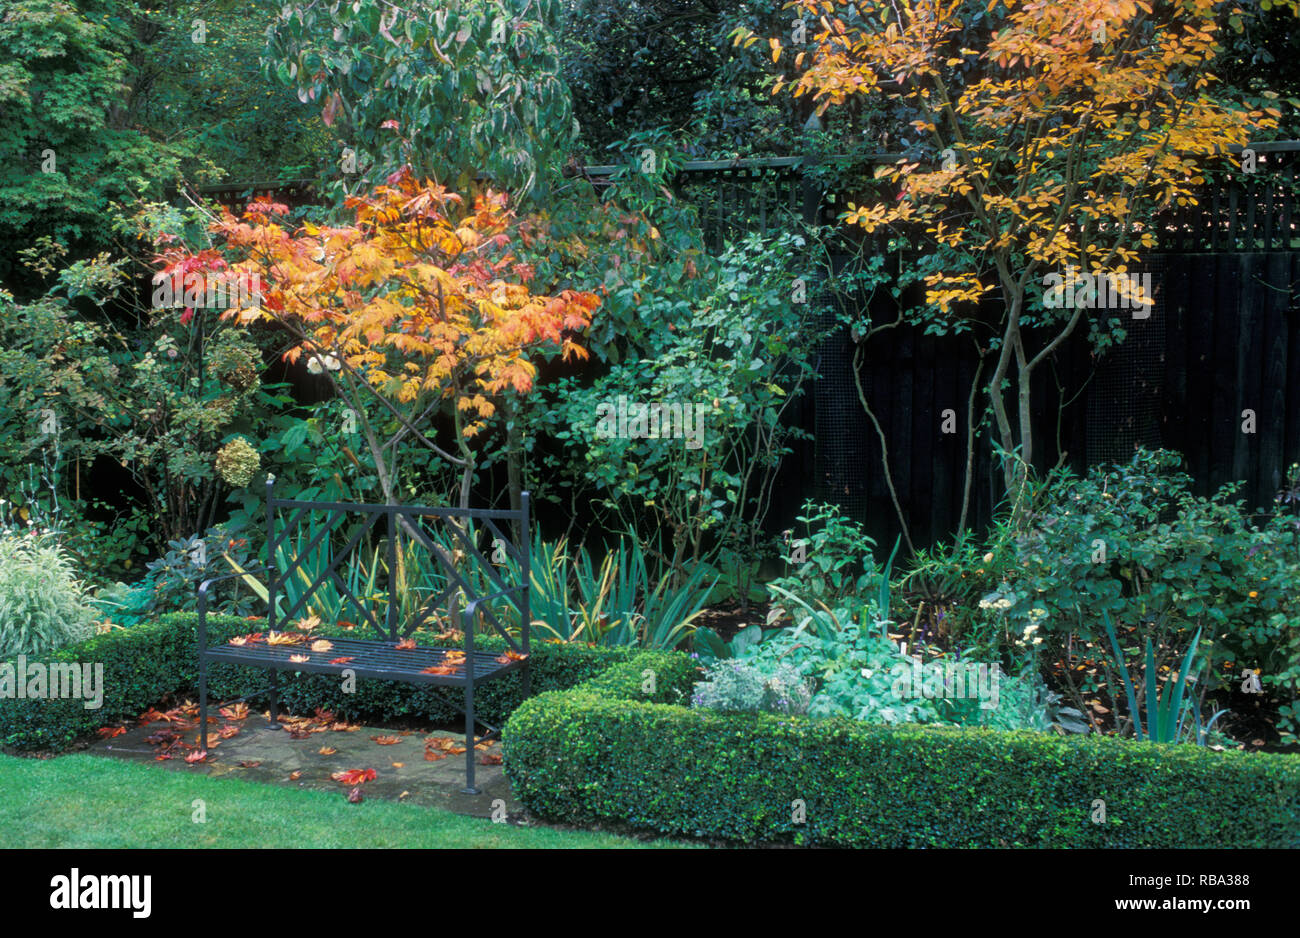 AUTUMN GARDEN SCENE (BUXUS HEDGE, ACER PALMATUM AND ON THE RIGHT EUONYMUS CANADENSIS) - Stock Image